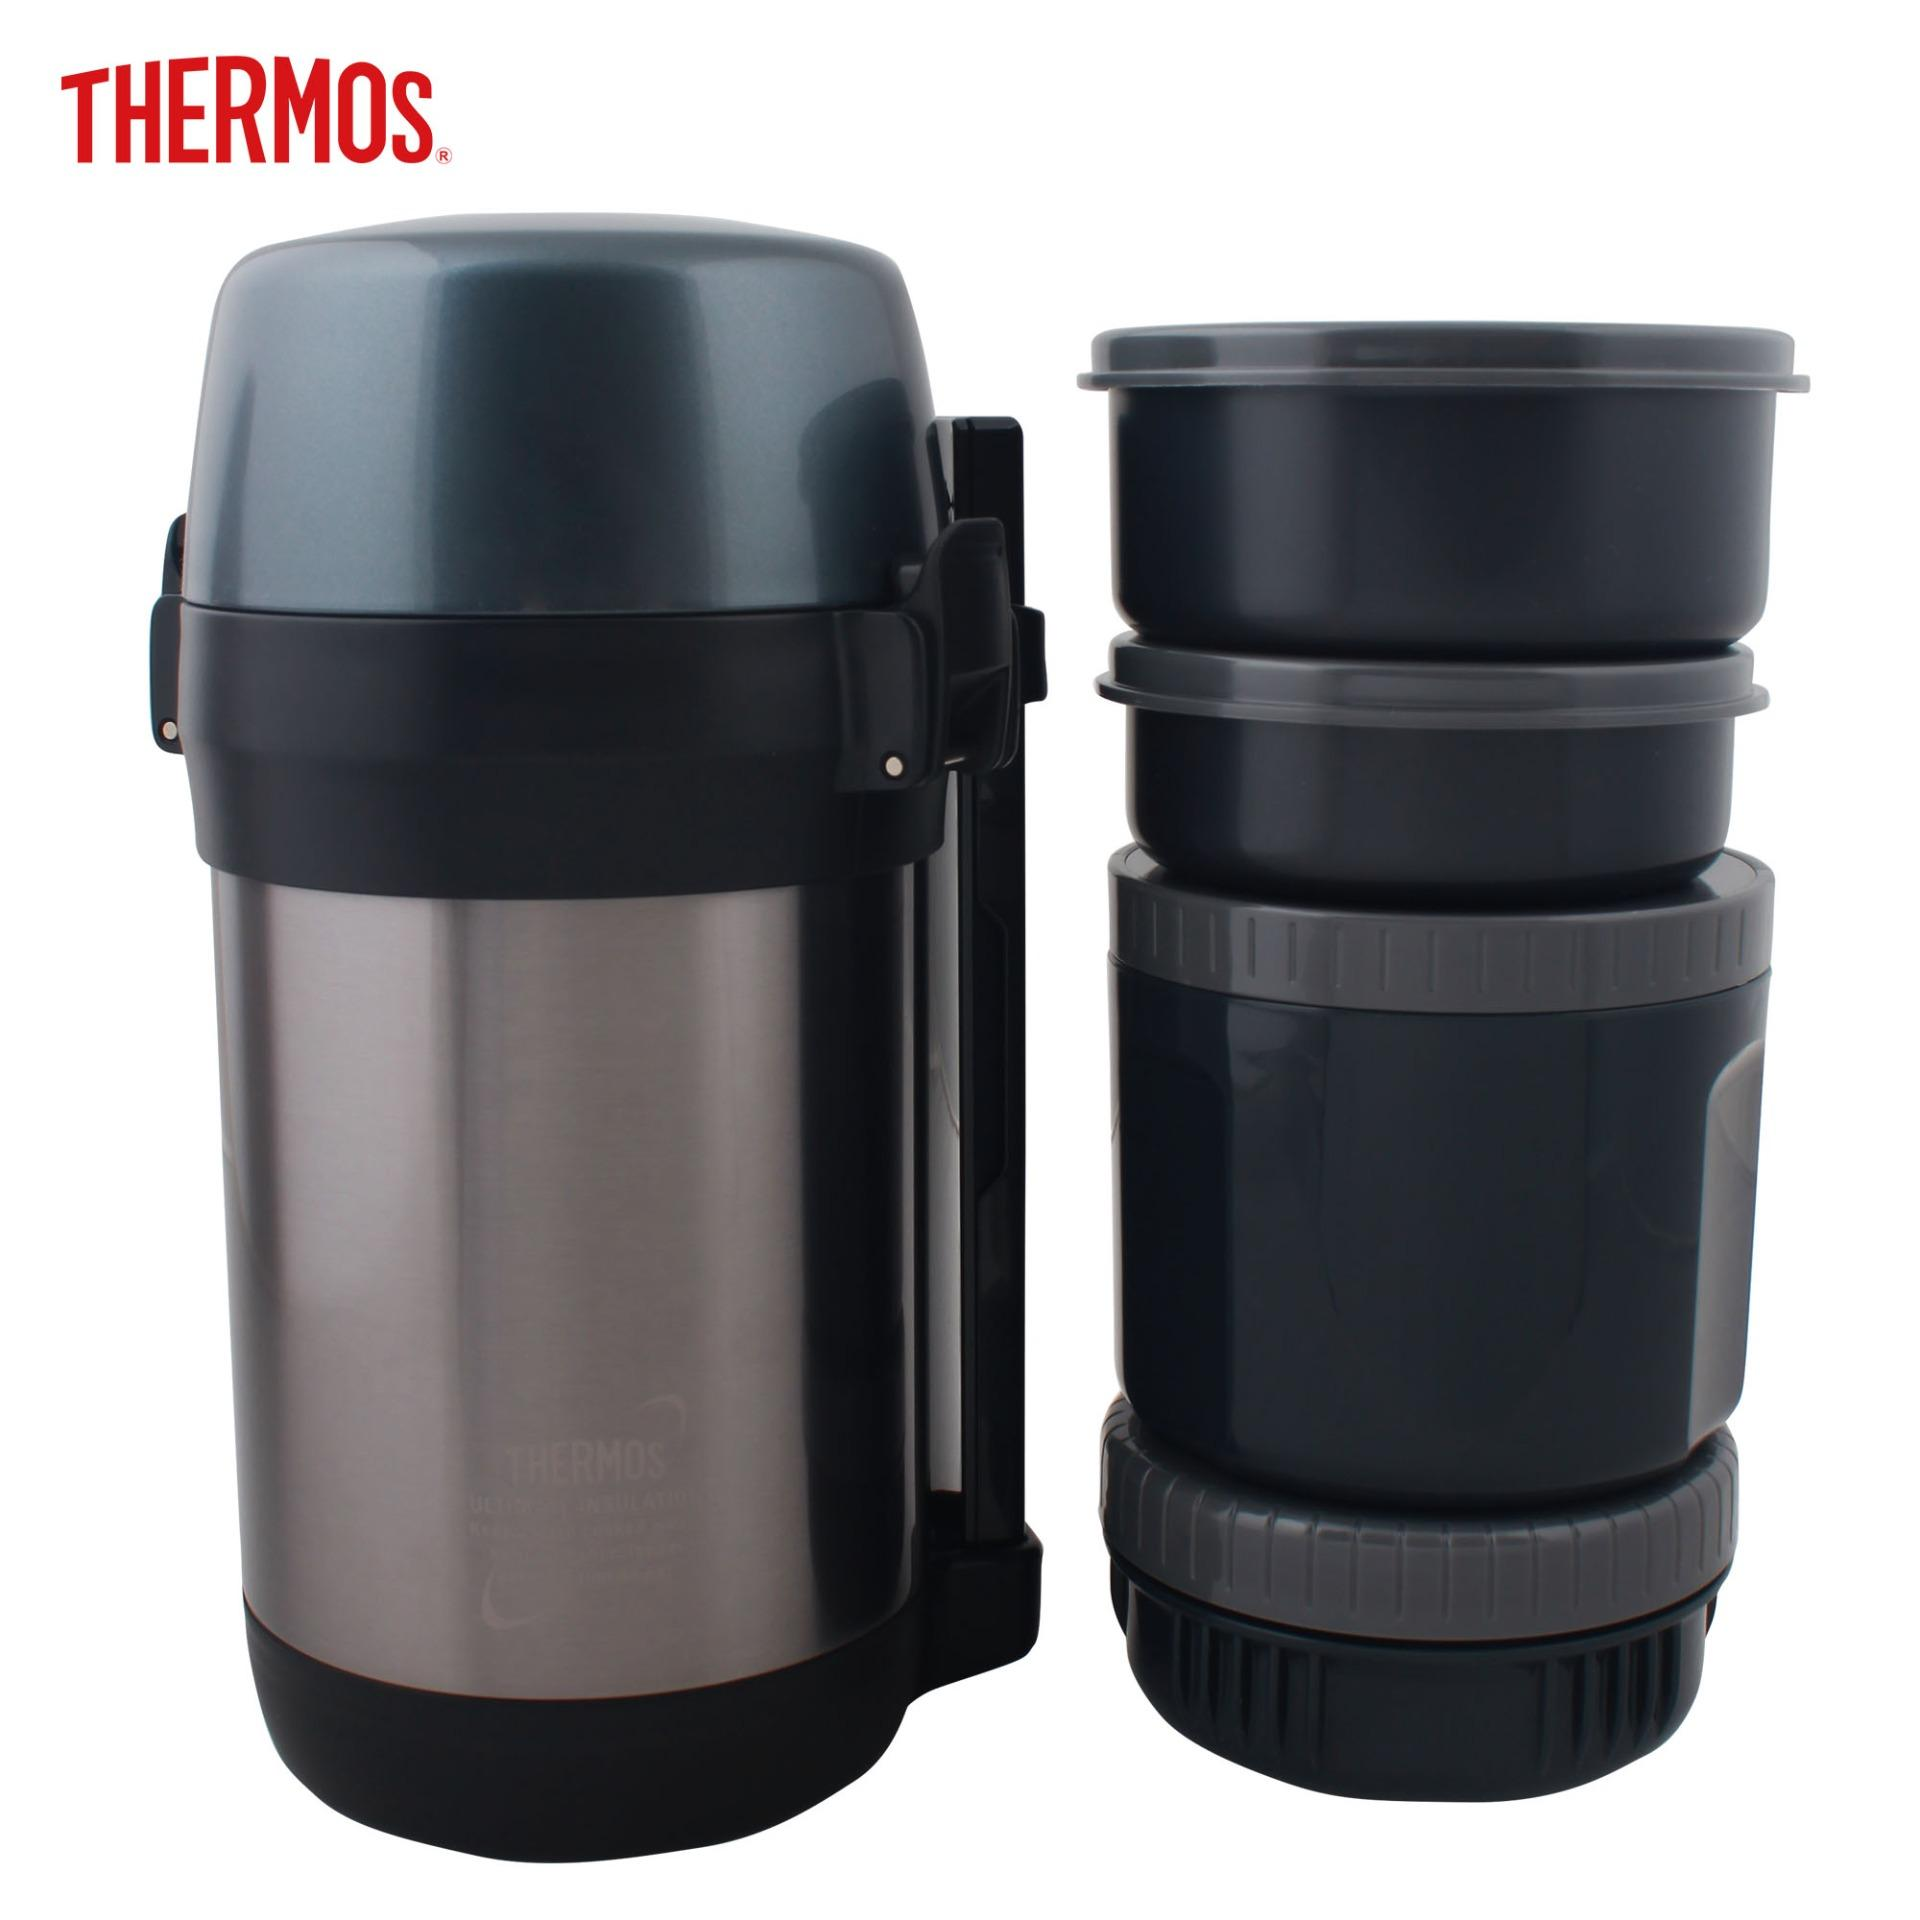 Thermos Philippines: Thermos price list - Thermos Tumblers